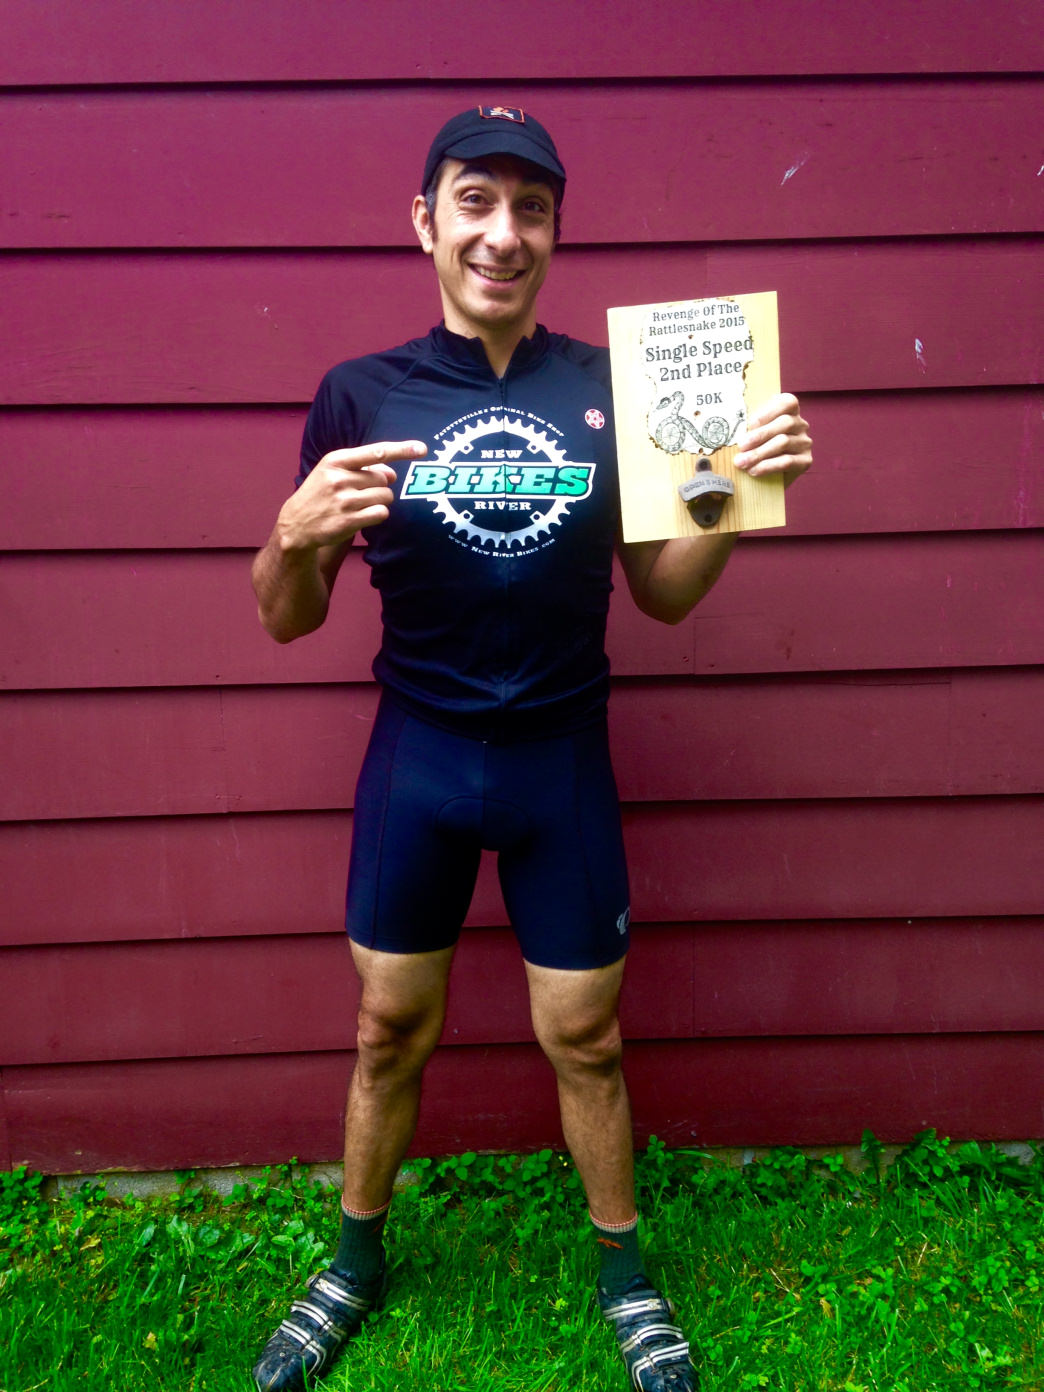 The West Virginia Mountain Bike Association Race Series has about 25 races each year to choose from.     Joe DeGaetano